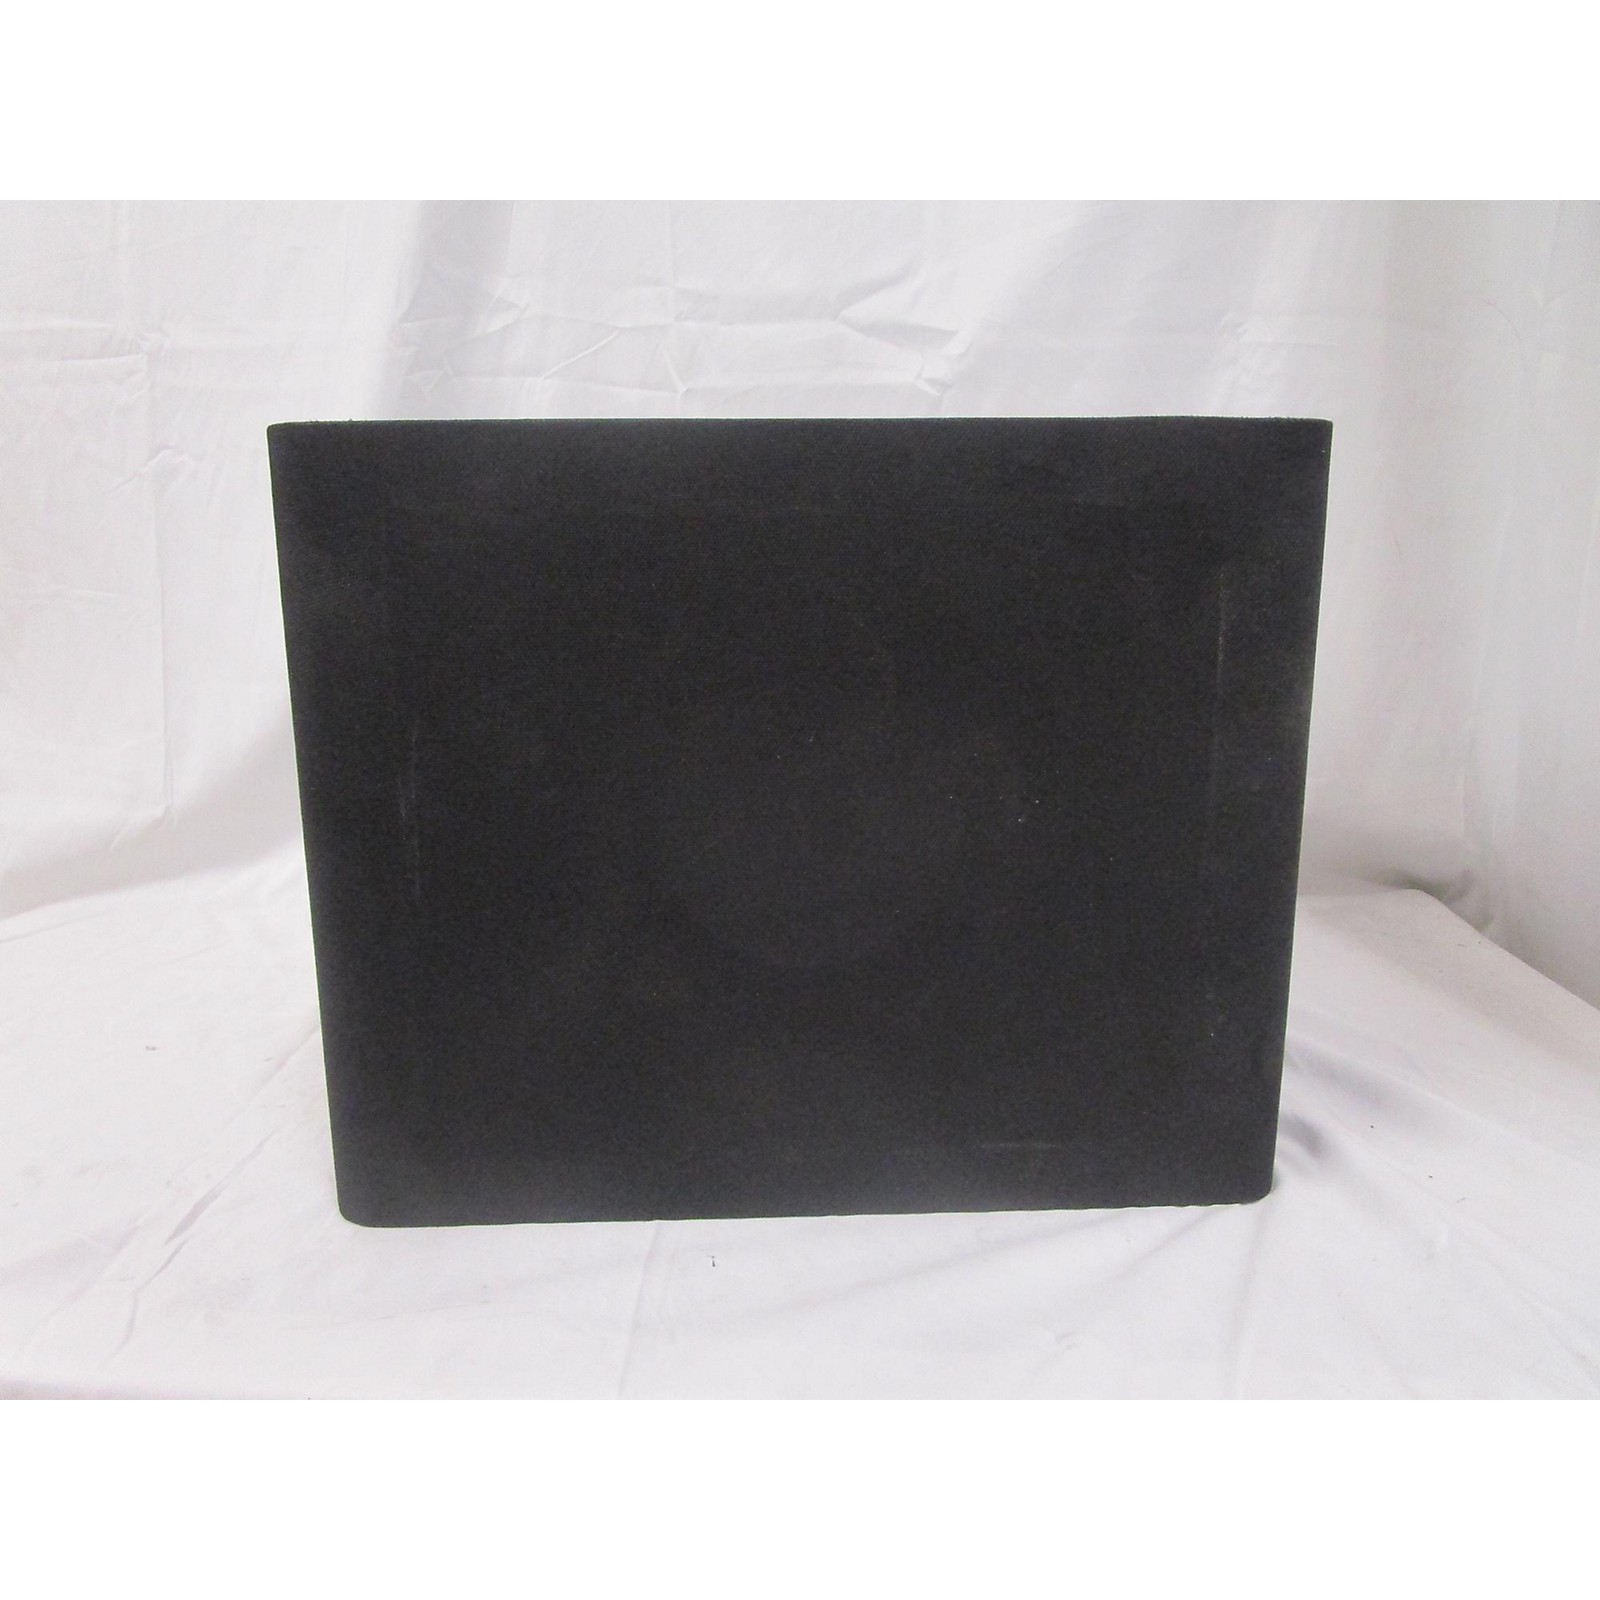 In Store Used Used Bluesky Sub 8 Powered Subwoofer